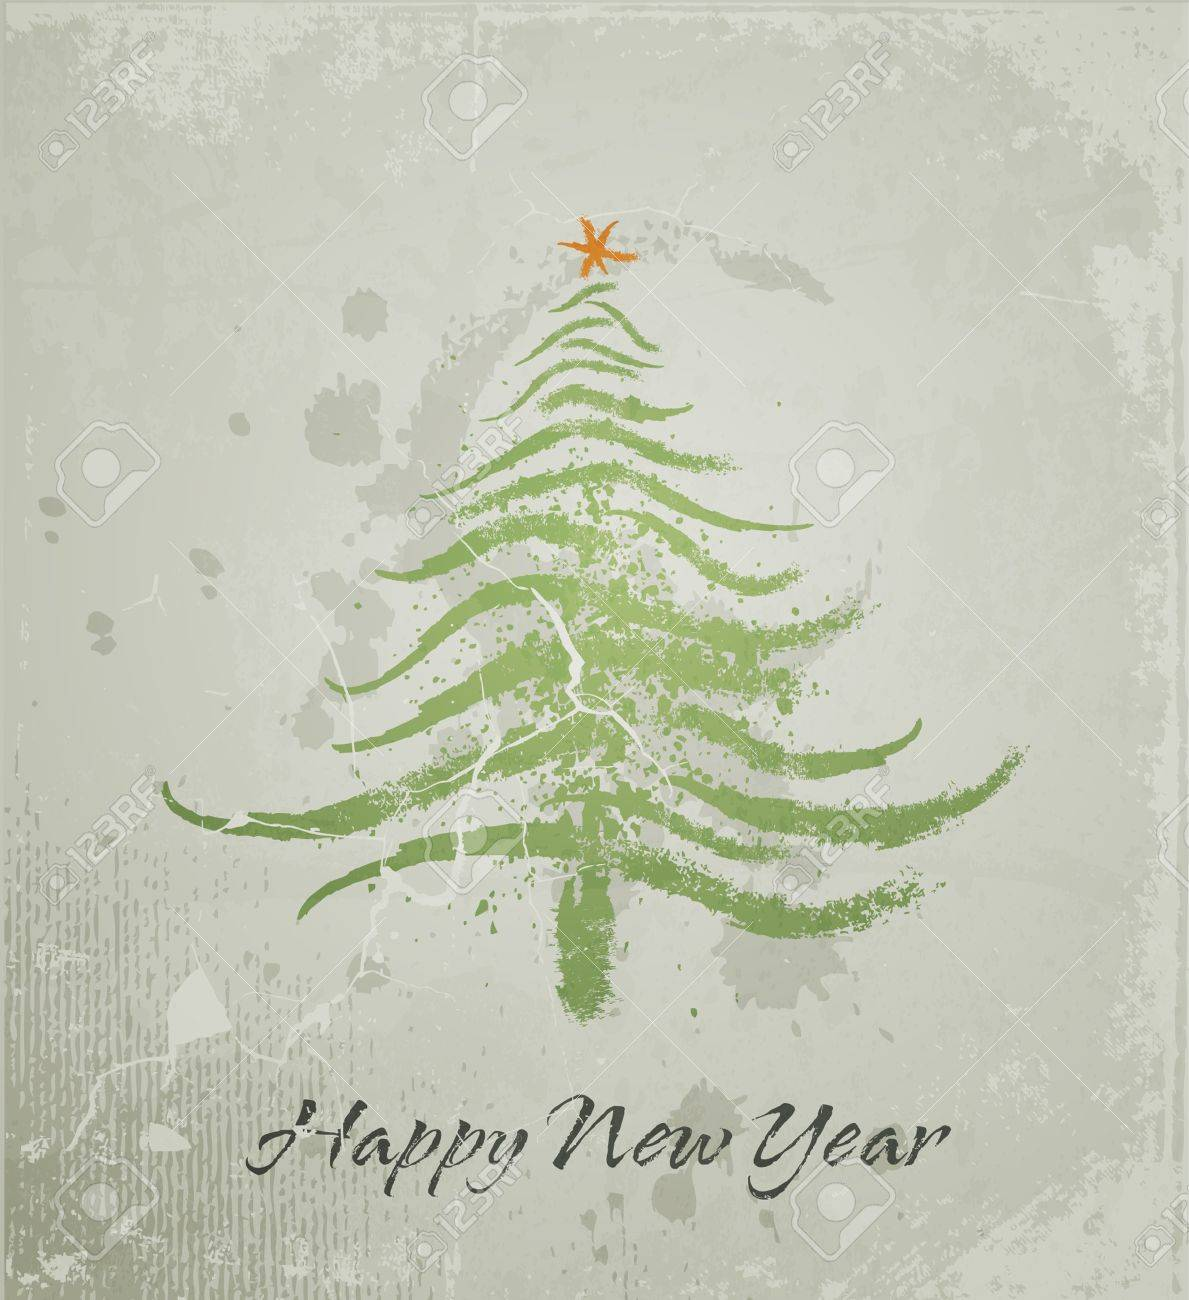 Christmas tree grunge background Stock Vector - 11657330